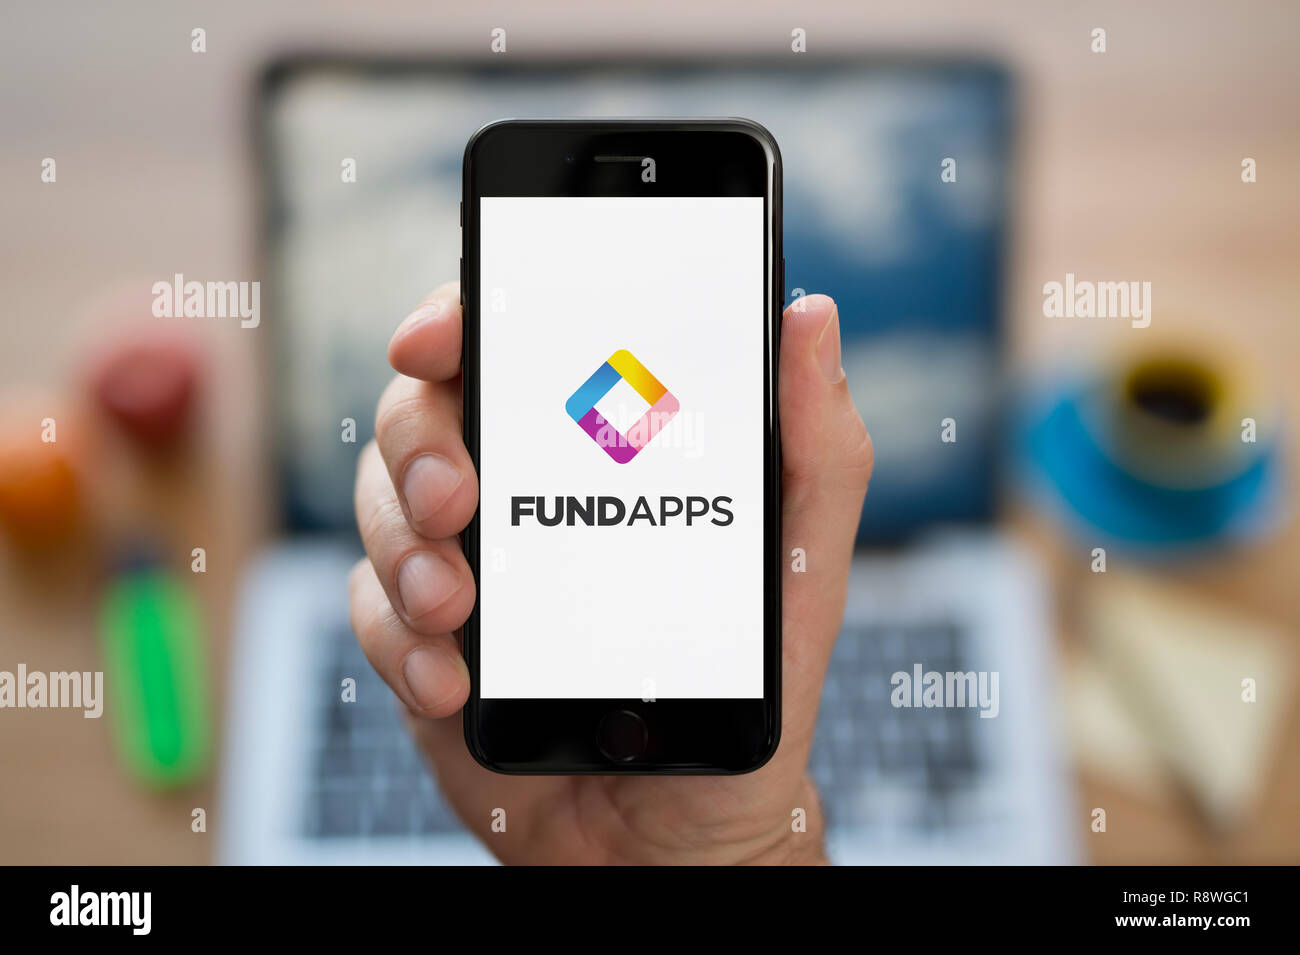 A man looks at his iPhone which displays the Fund Apps logo (Editorial use only). - Stock Image